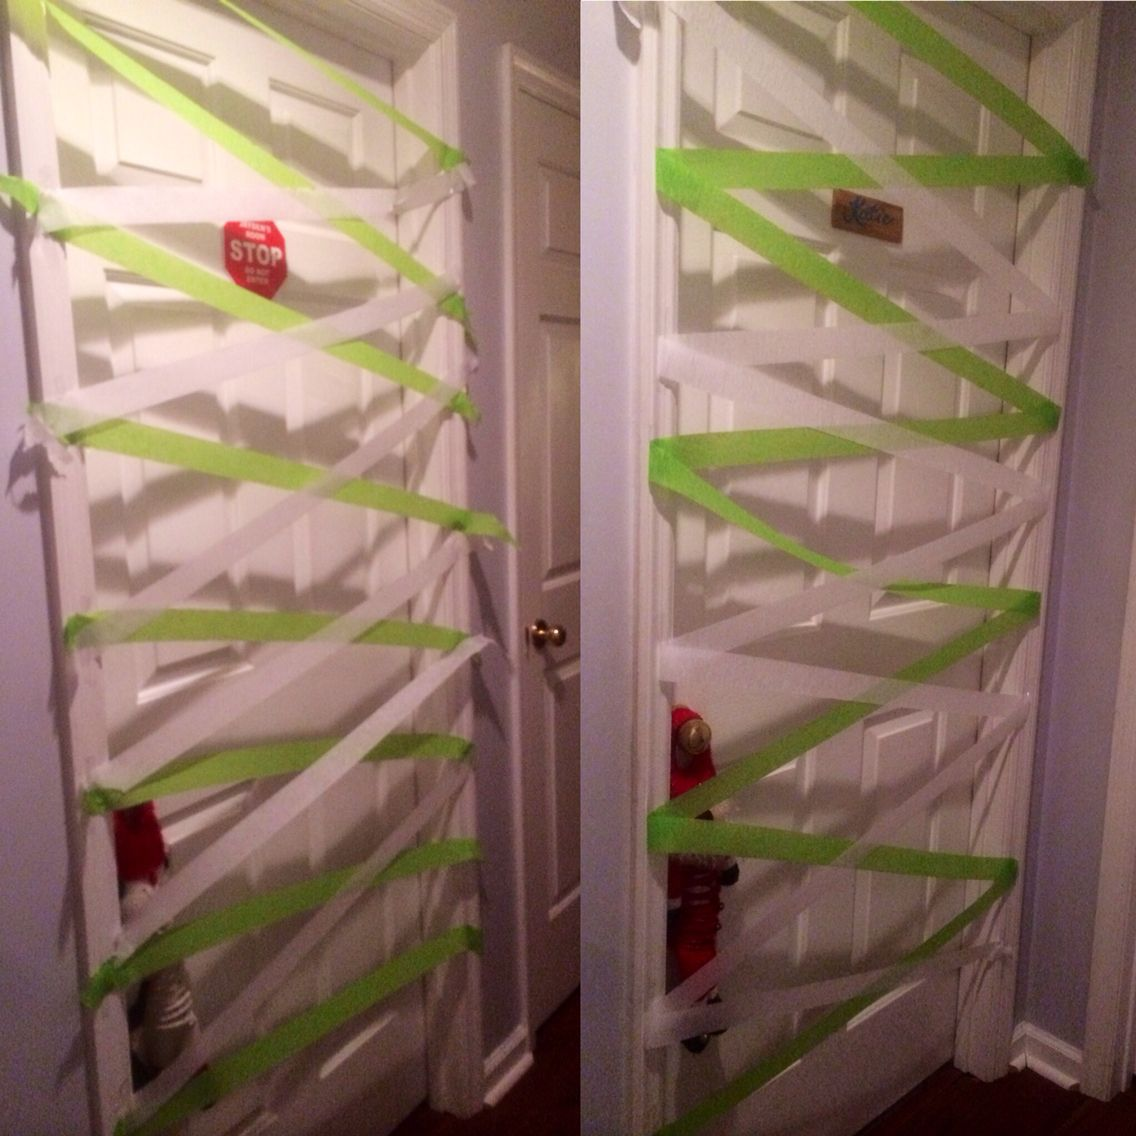 Romeo put crepe paper streamers over Katie and Jayden's doors while they were sleeping